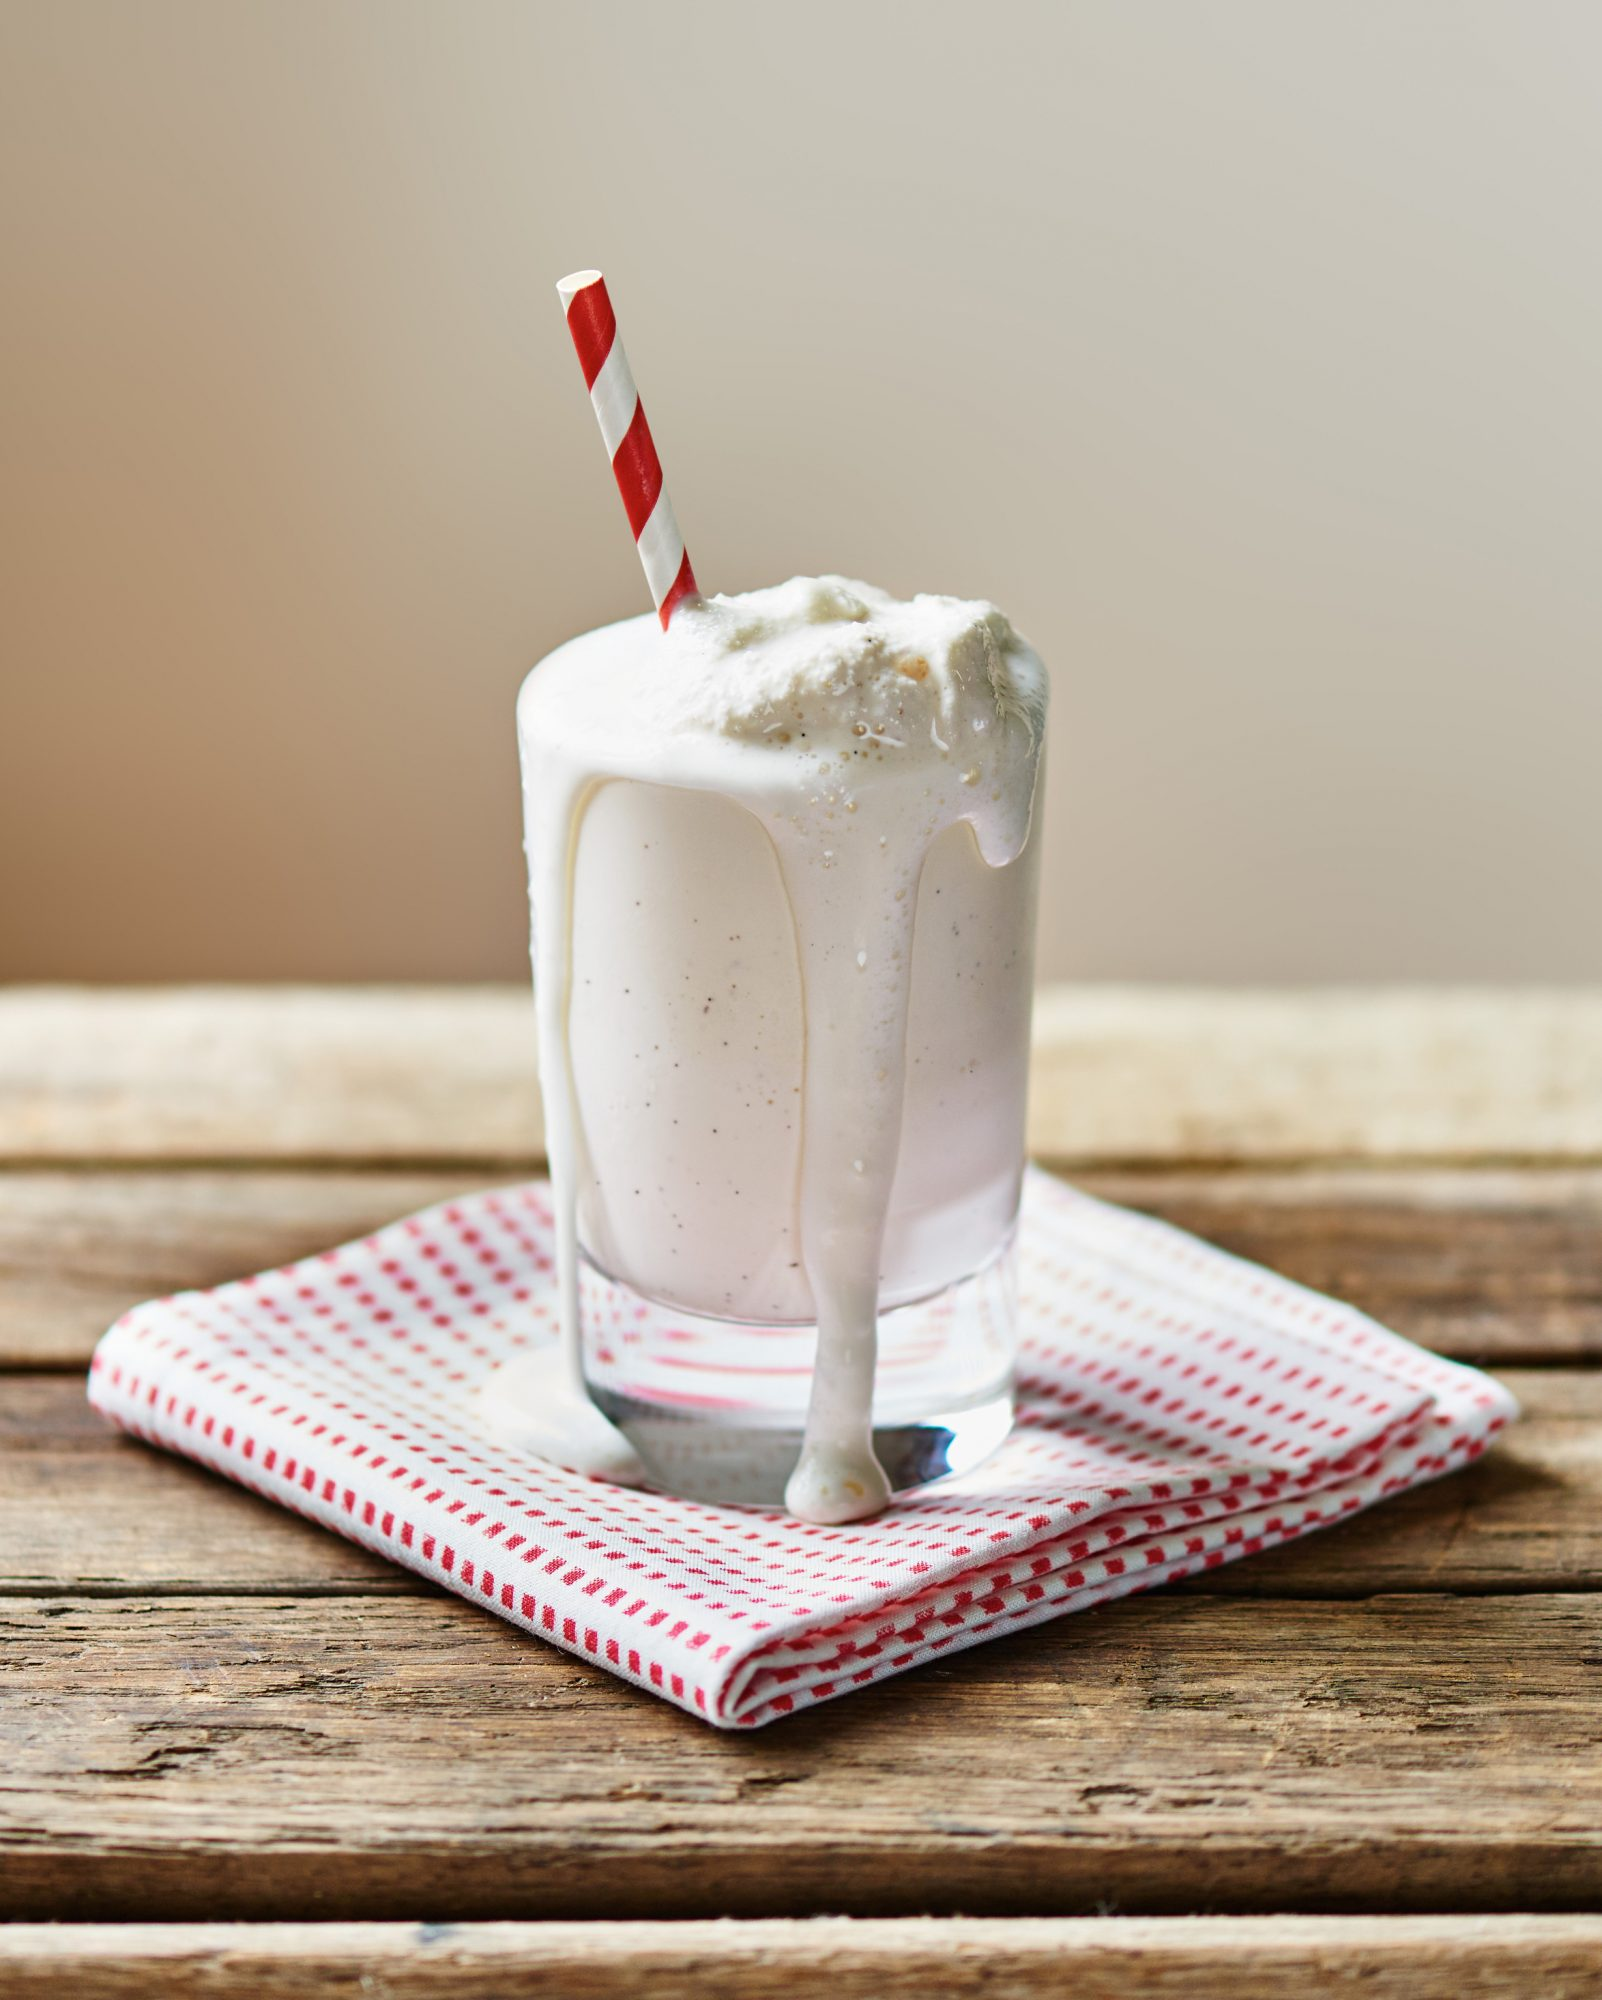 late-night-milkshake-vanilla-salt-and-straw-intro-image-0615.jpg